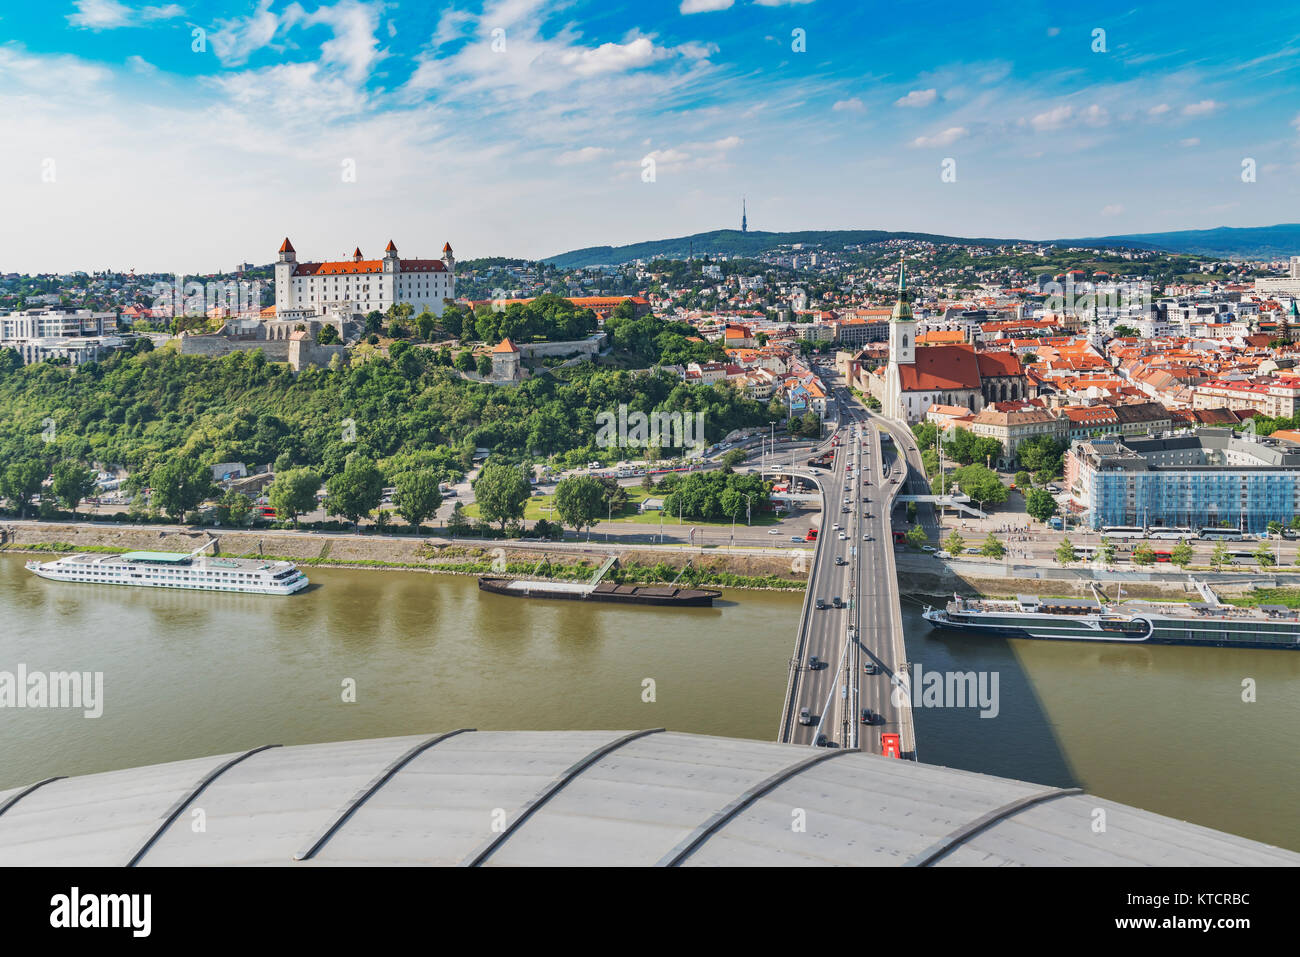 View from the 80 meter high lookout platform of the SNP bridge, the river Danube, Bratislava castle and St. Martin's - Stock Image